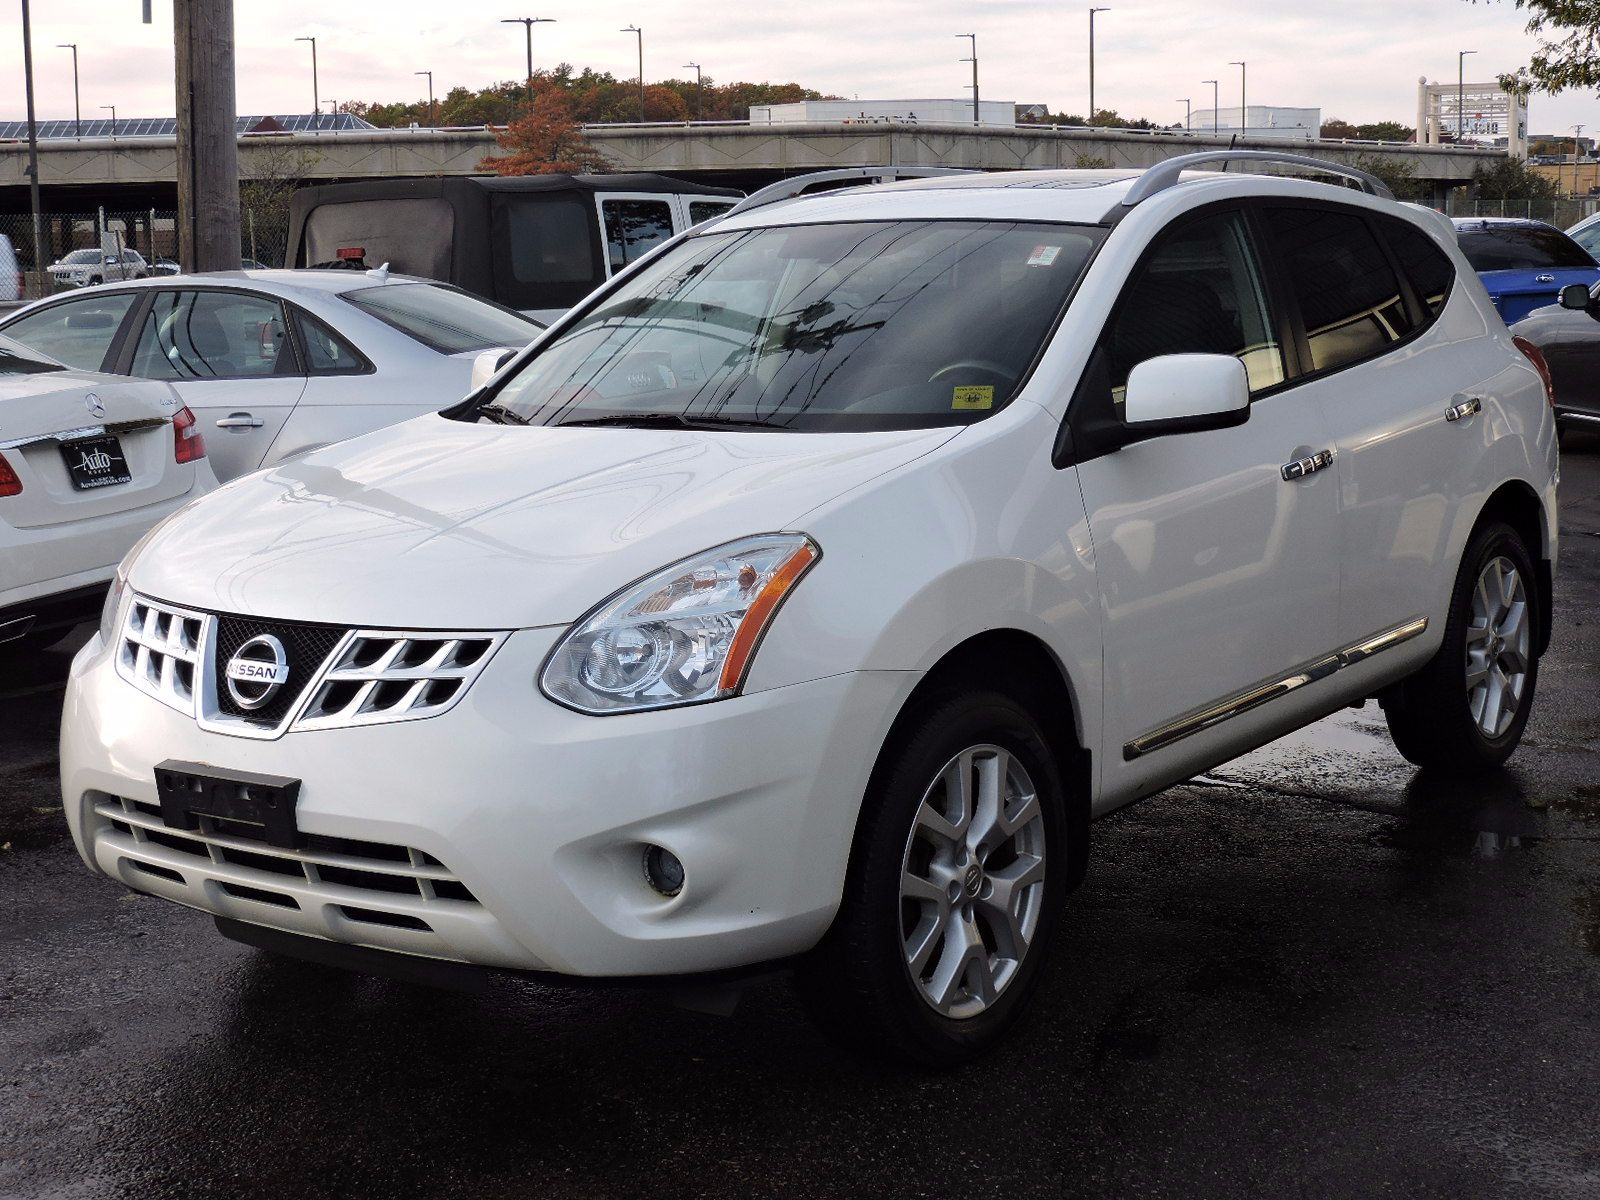 2011 Nissan Rogue SL - All Wheel Drive - Navigation